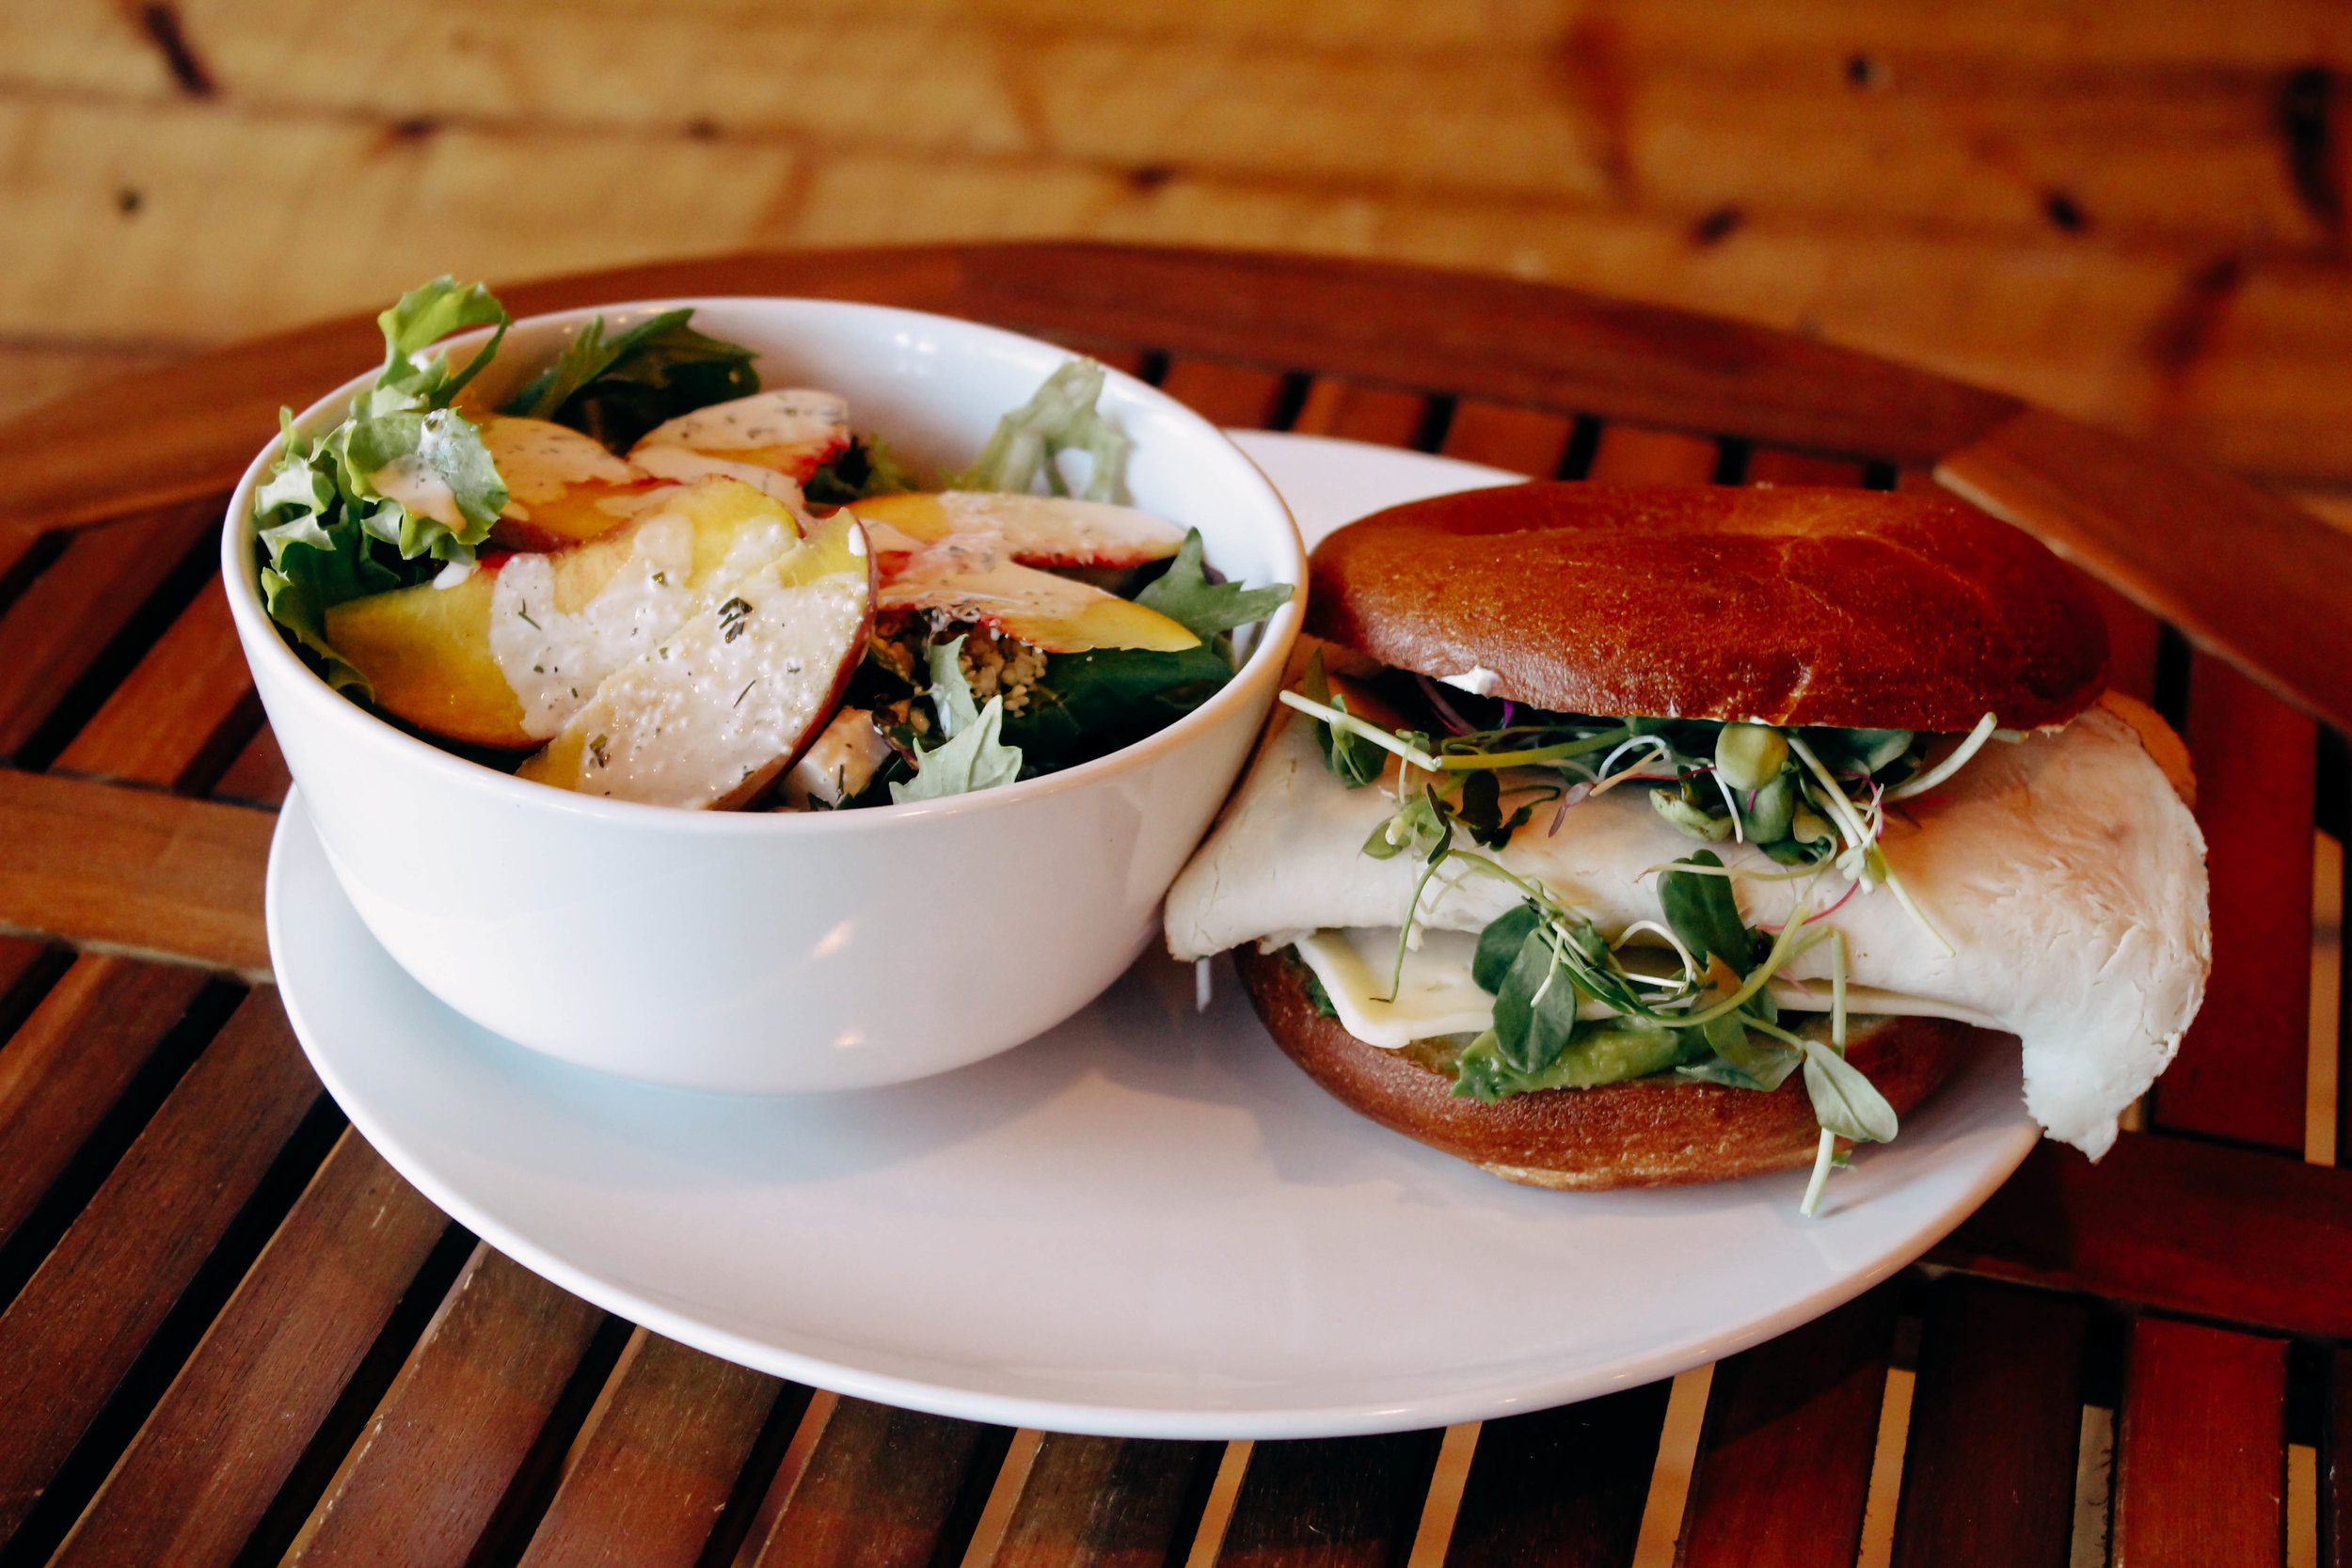 Heritage Roasting Co has a newly launched brunch menu serving up in-house baked goods, Avocado toasts, and healthy but delicious salad options. In Shasta Lake, 8 Mins from Redding